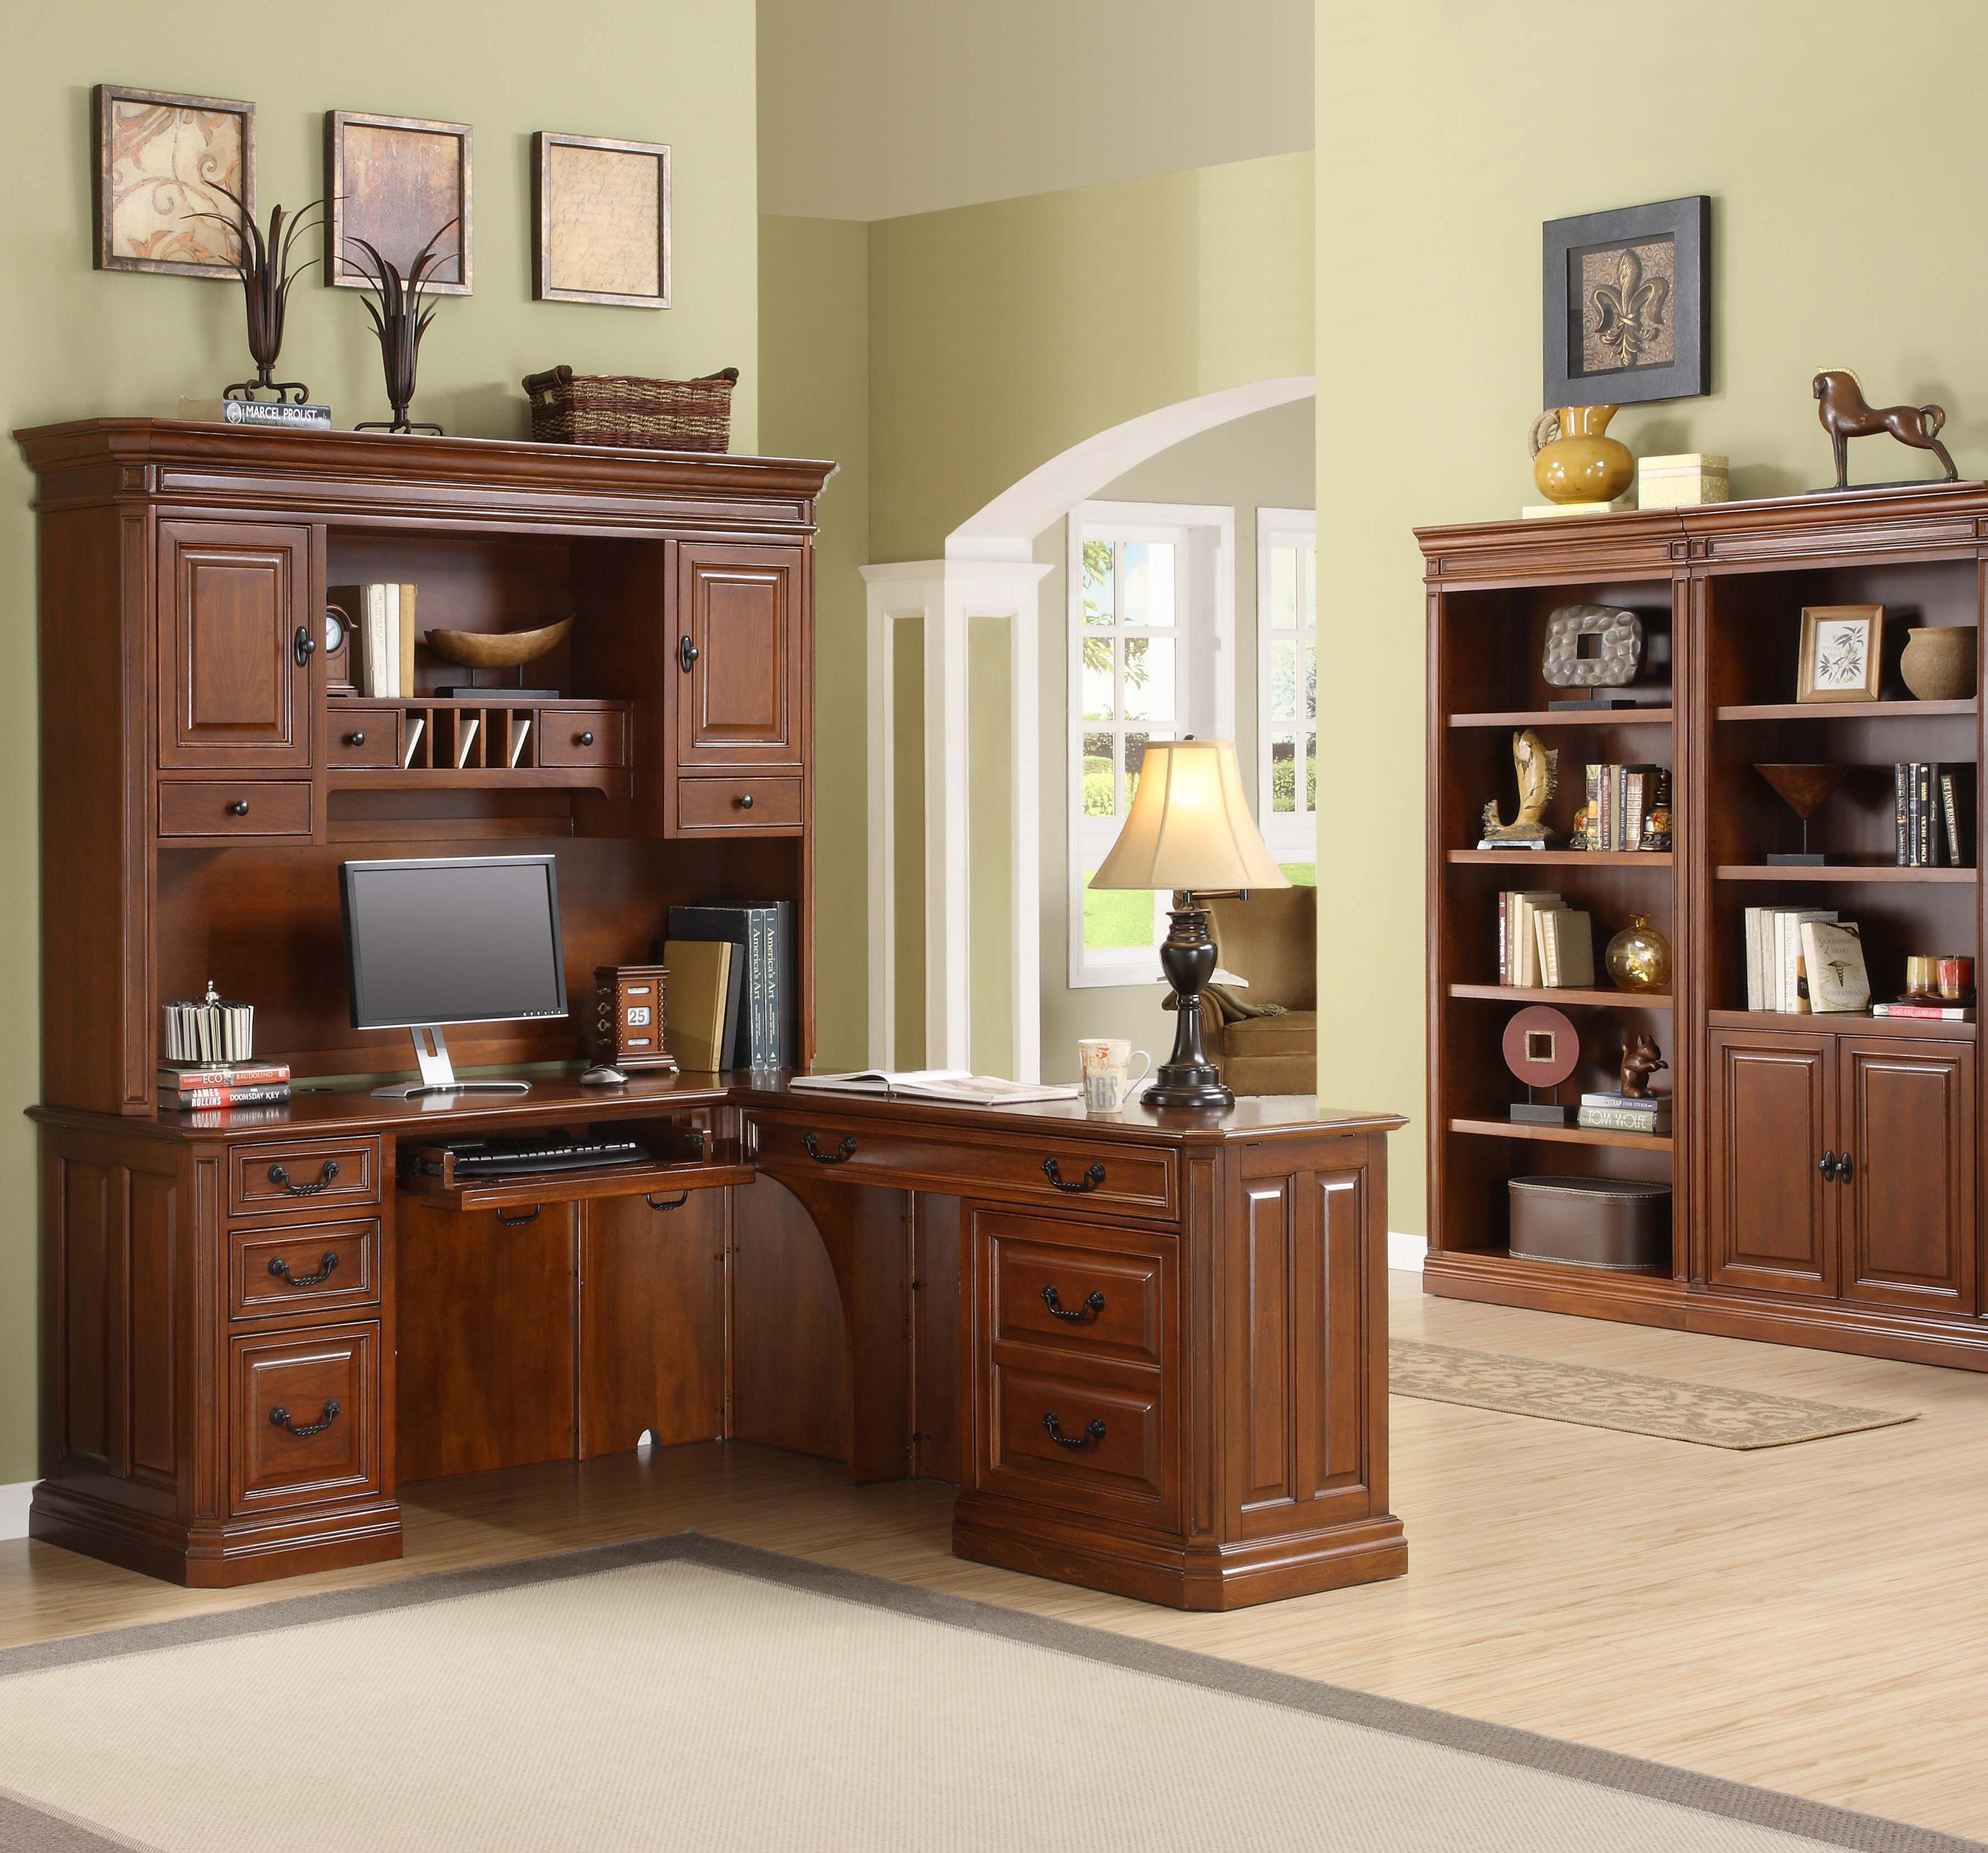 Golden Oak by Whalen Augusta Desk and Hutch - Item Number: AGCLD1+2+3+AG68EH